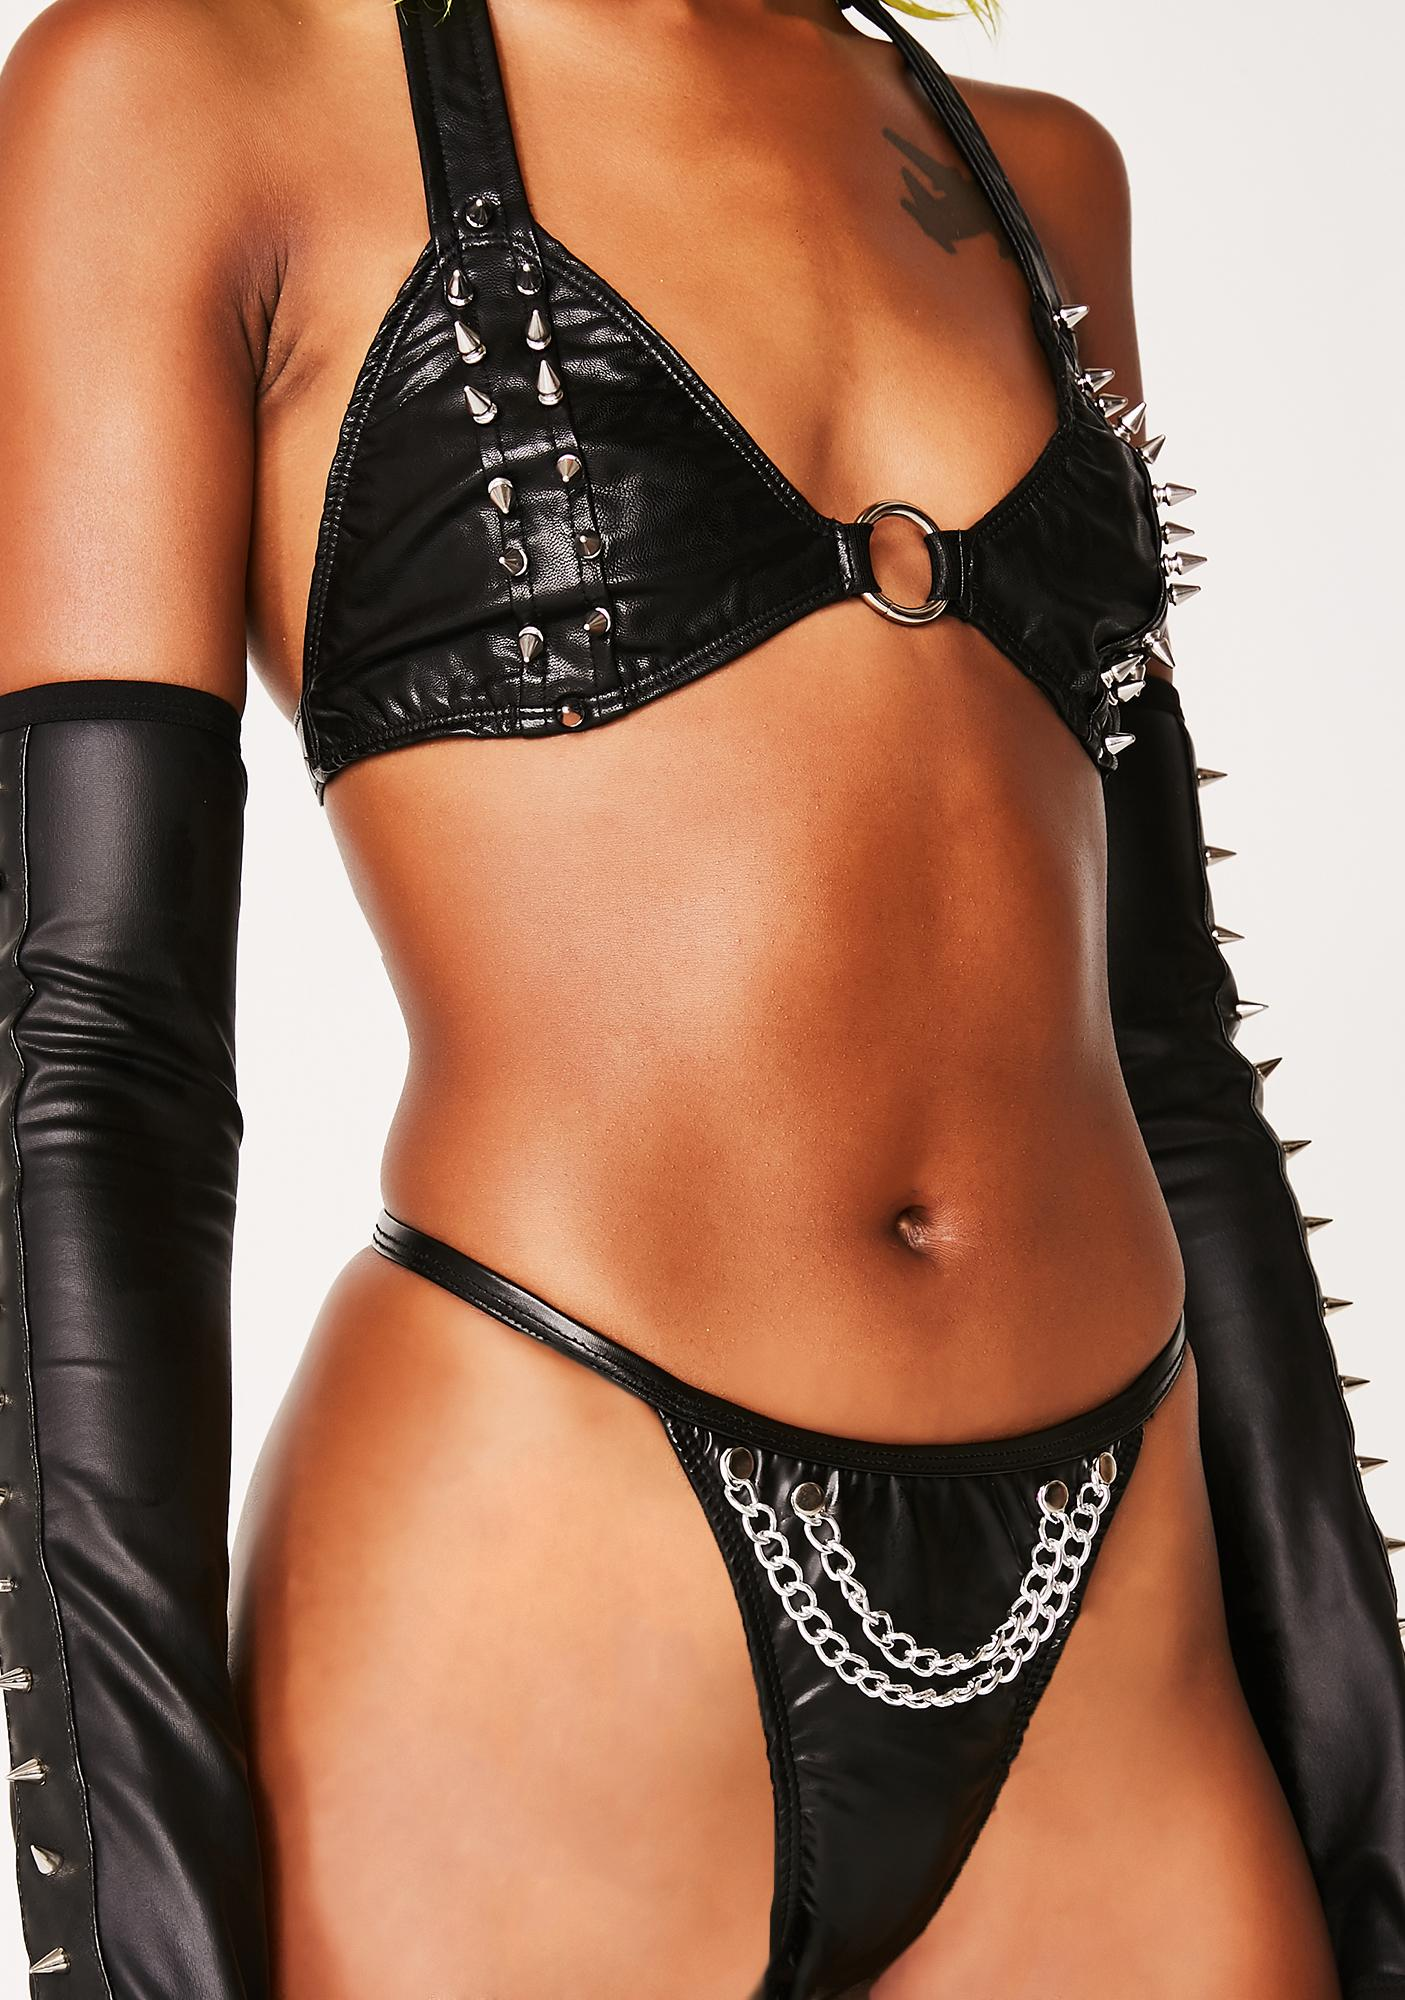 Club Exx The Huntress Chain Panties